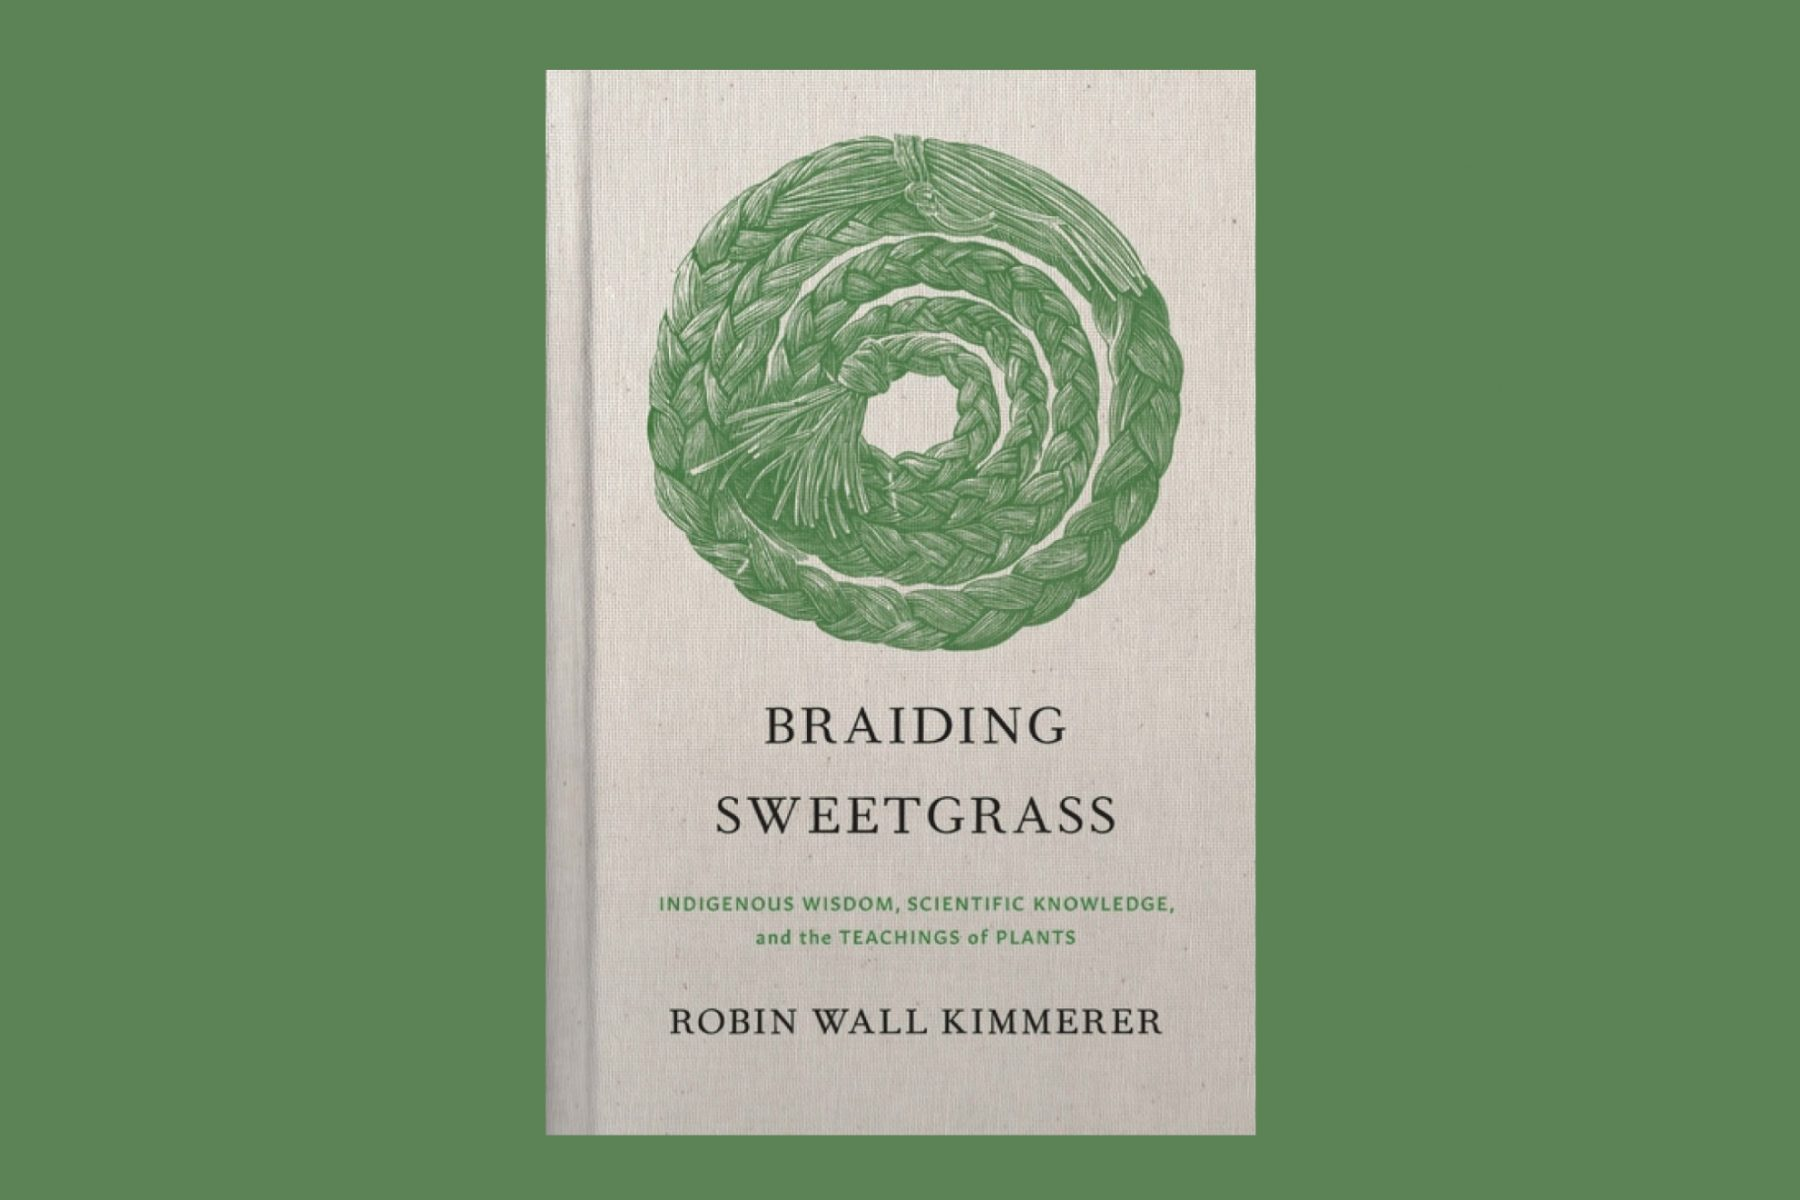 Image of the book Braiding Sweetgrass by Robin Wall Kimmerer